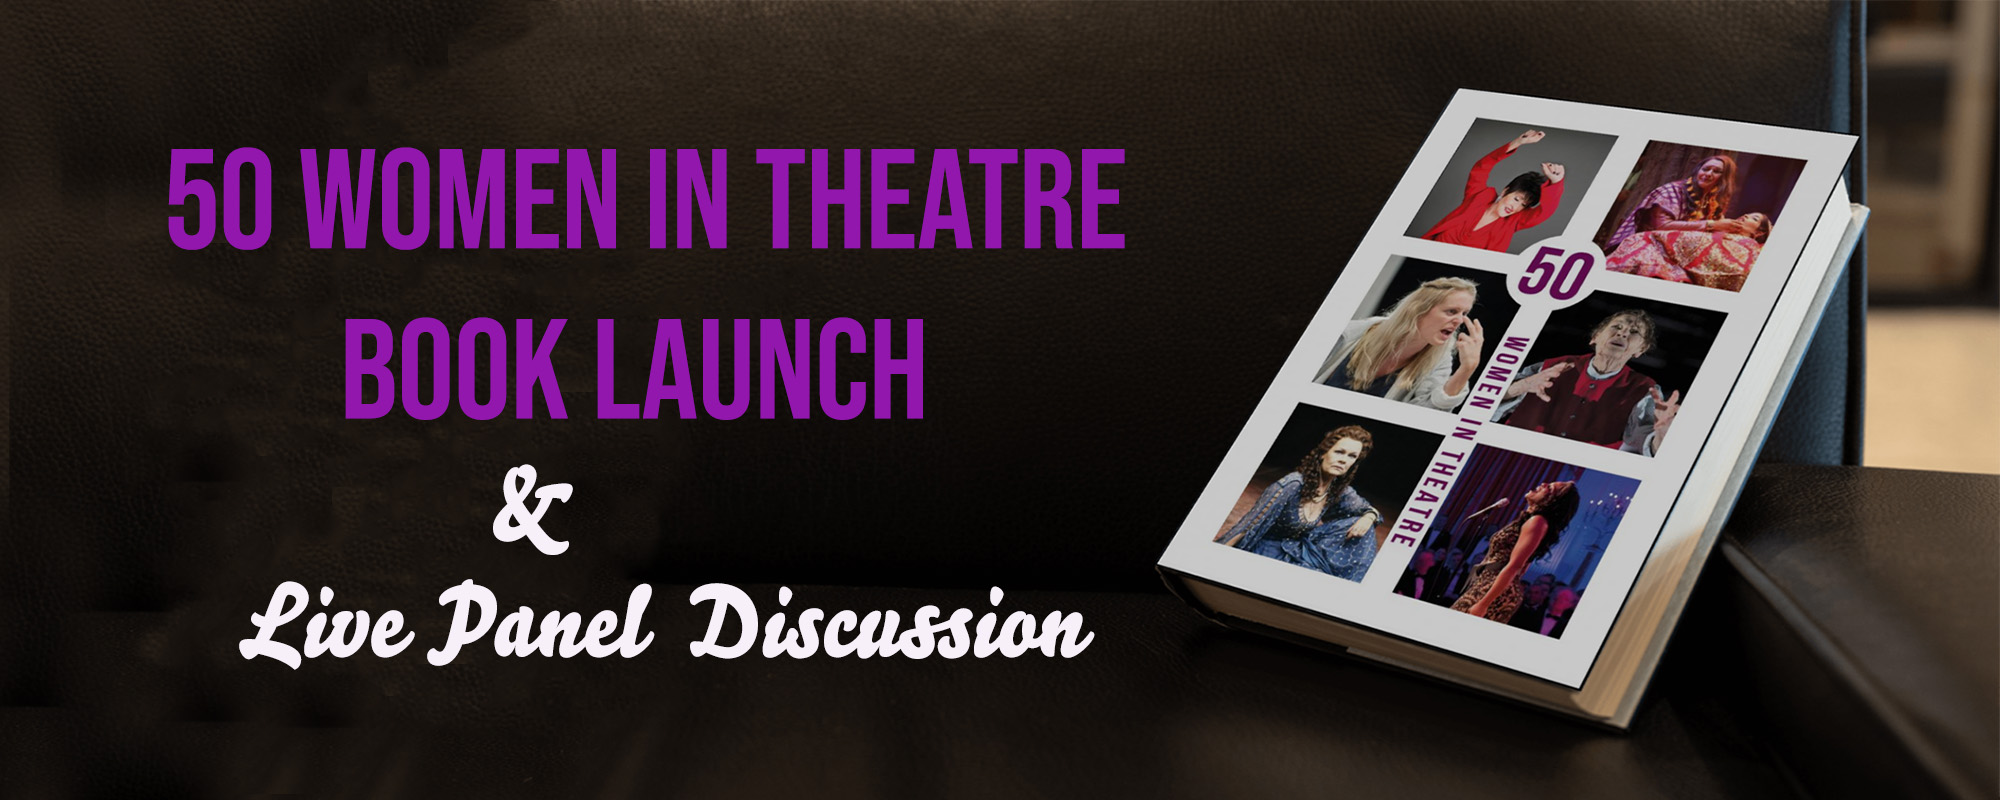 Live discussion and Booklaunch 50 WOMEN IN THEATRE